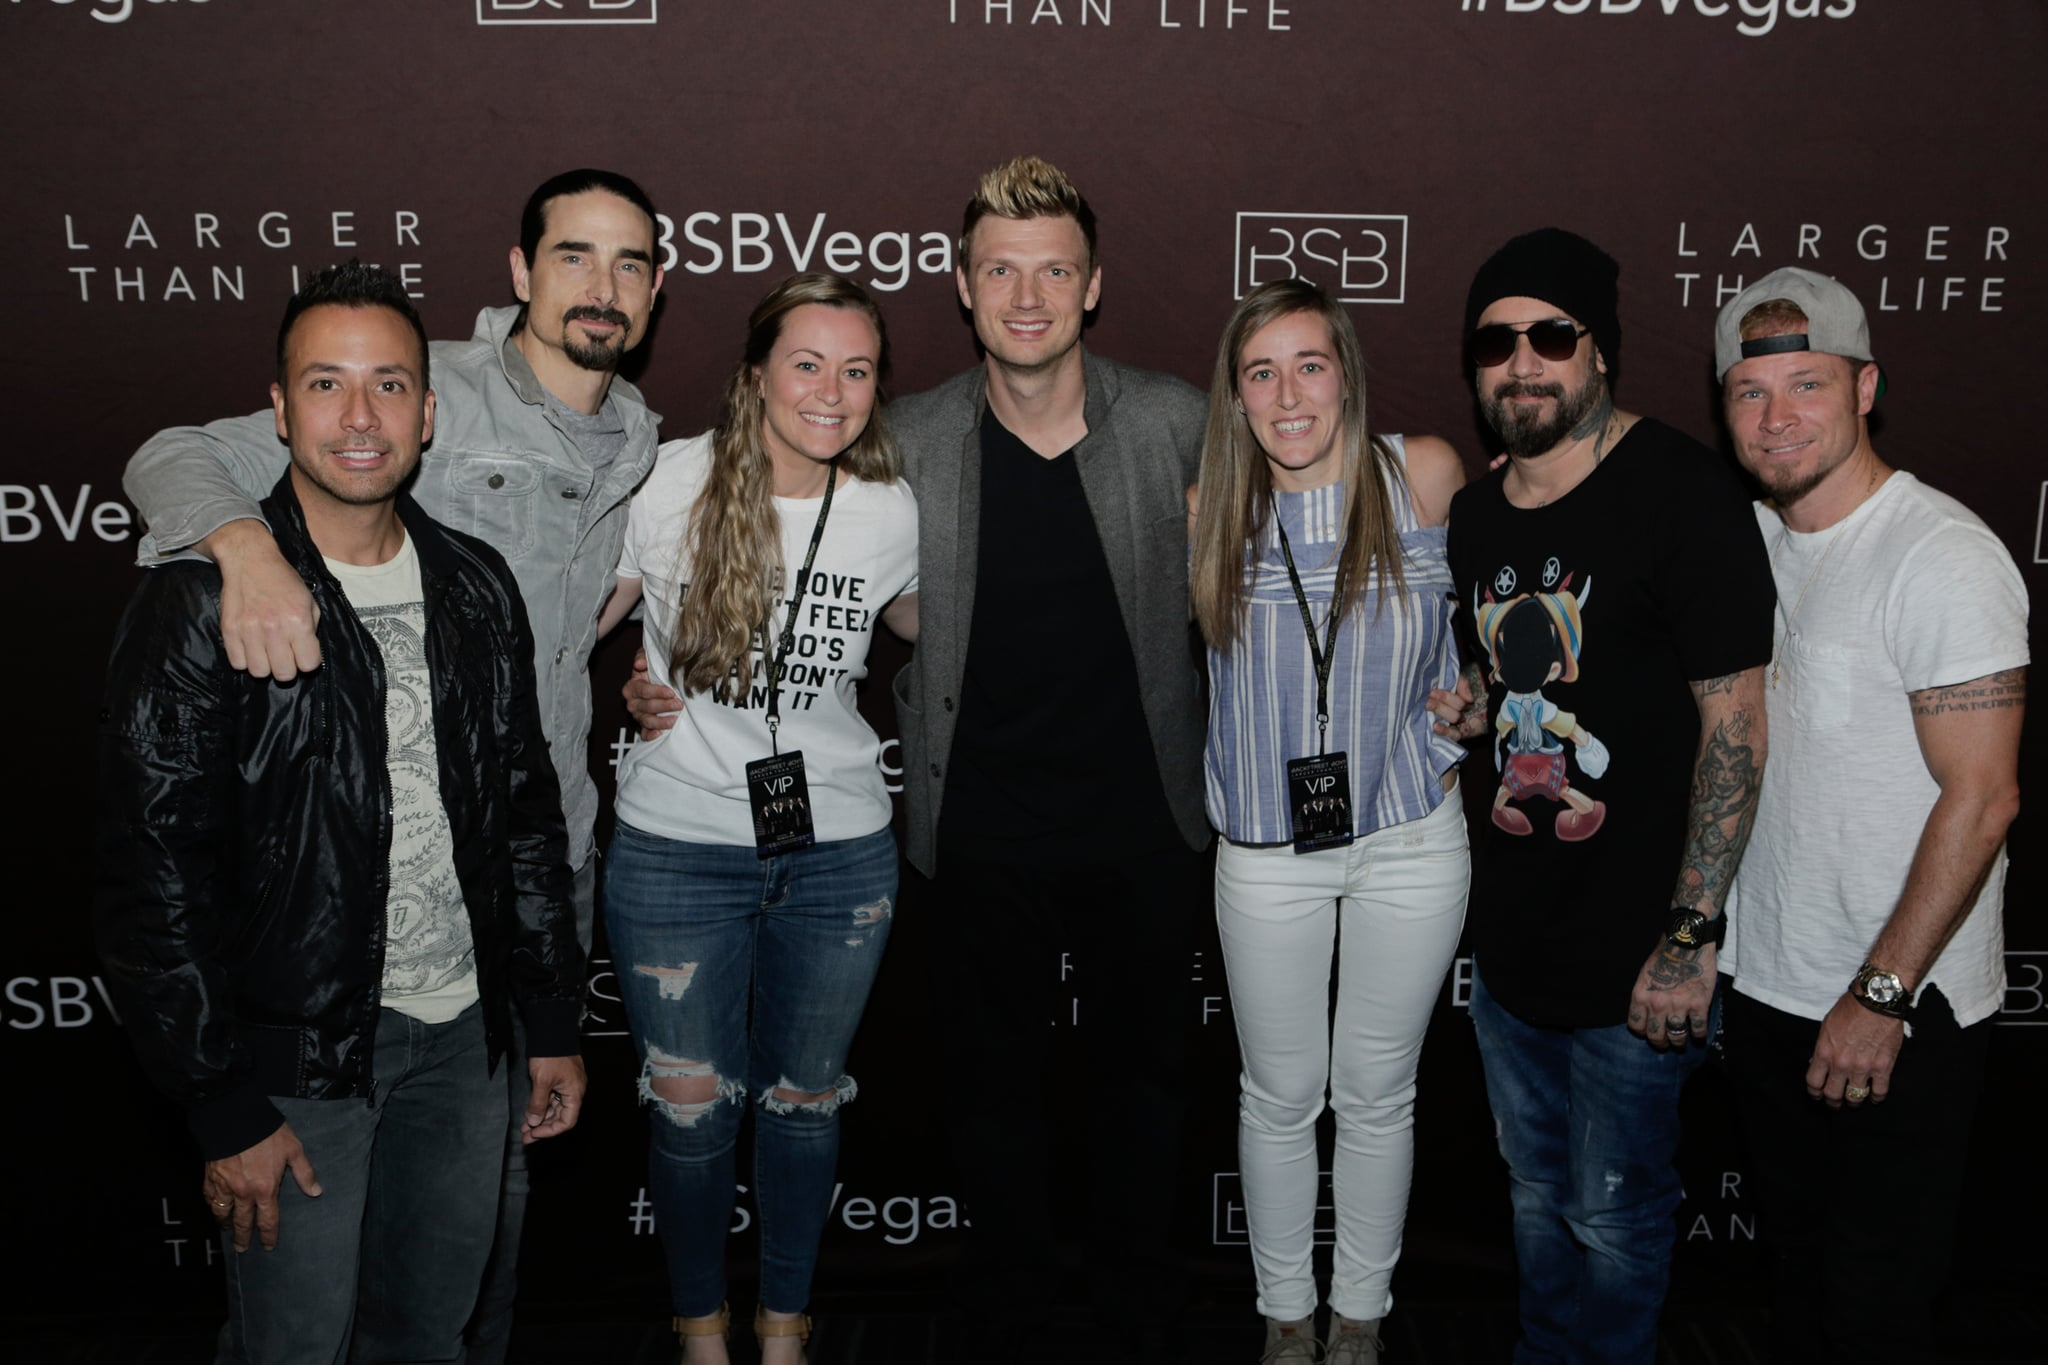 I met the backstreet boys popsugar middle east celebrity and share this link kristyandbryce Choice Image